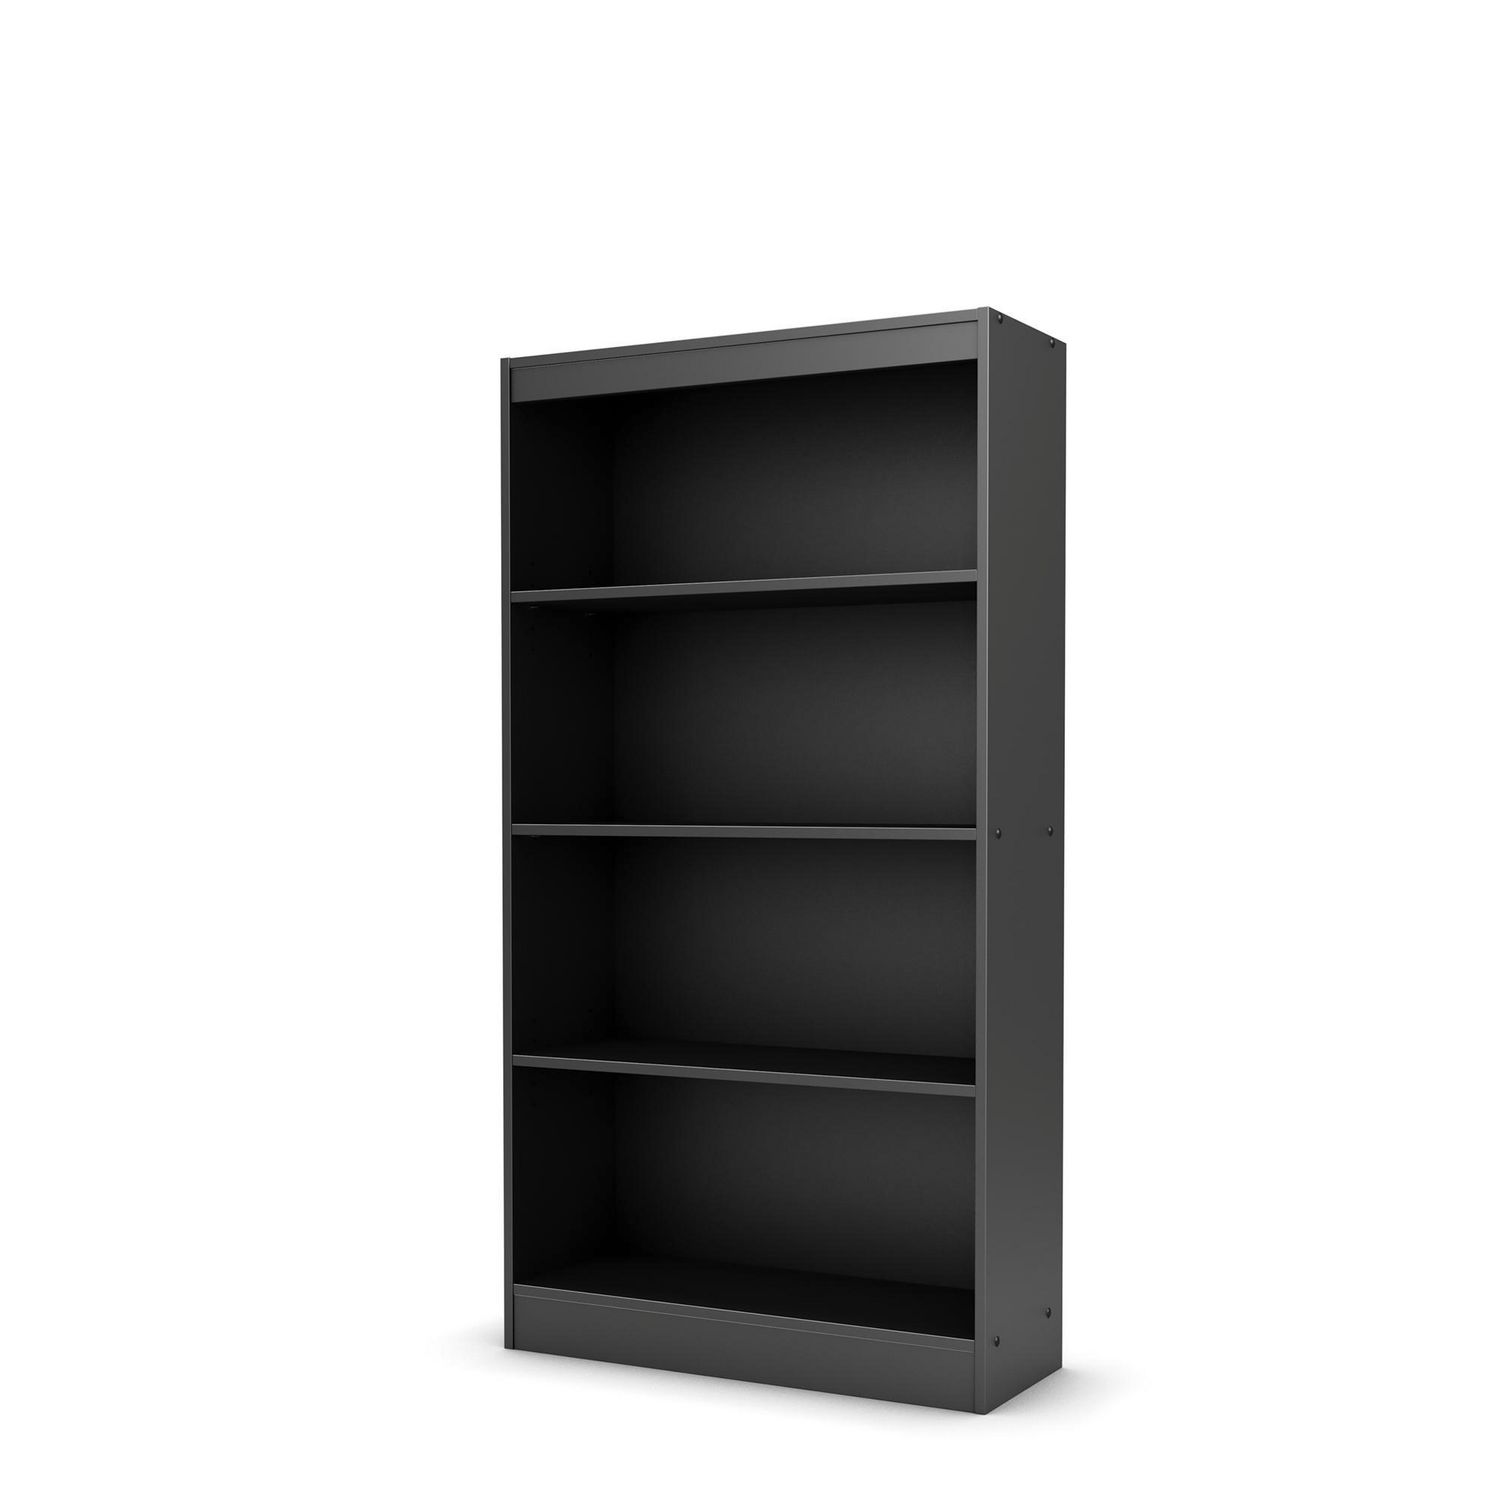 of bookshelves black bookcase on shelf nice bookshelf small best tall book bookcases solutions ideas